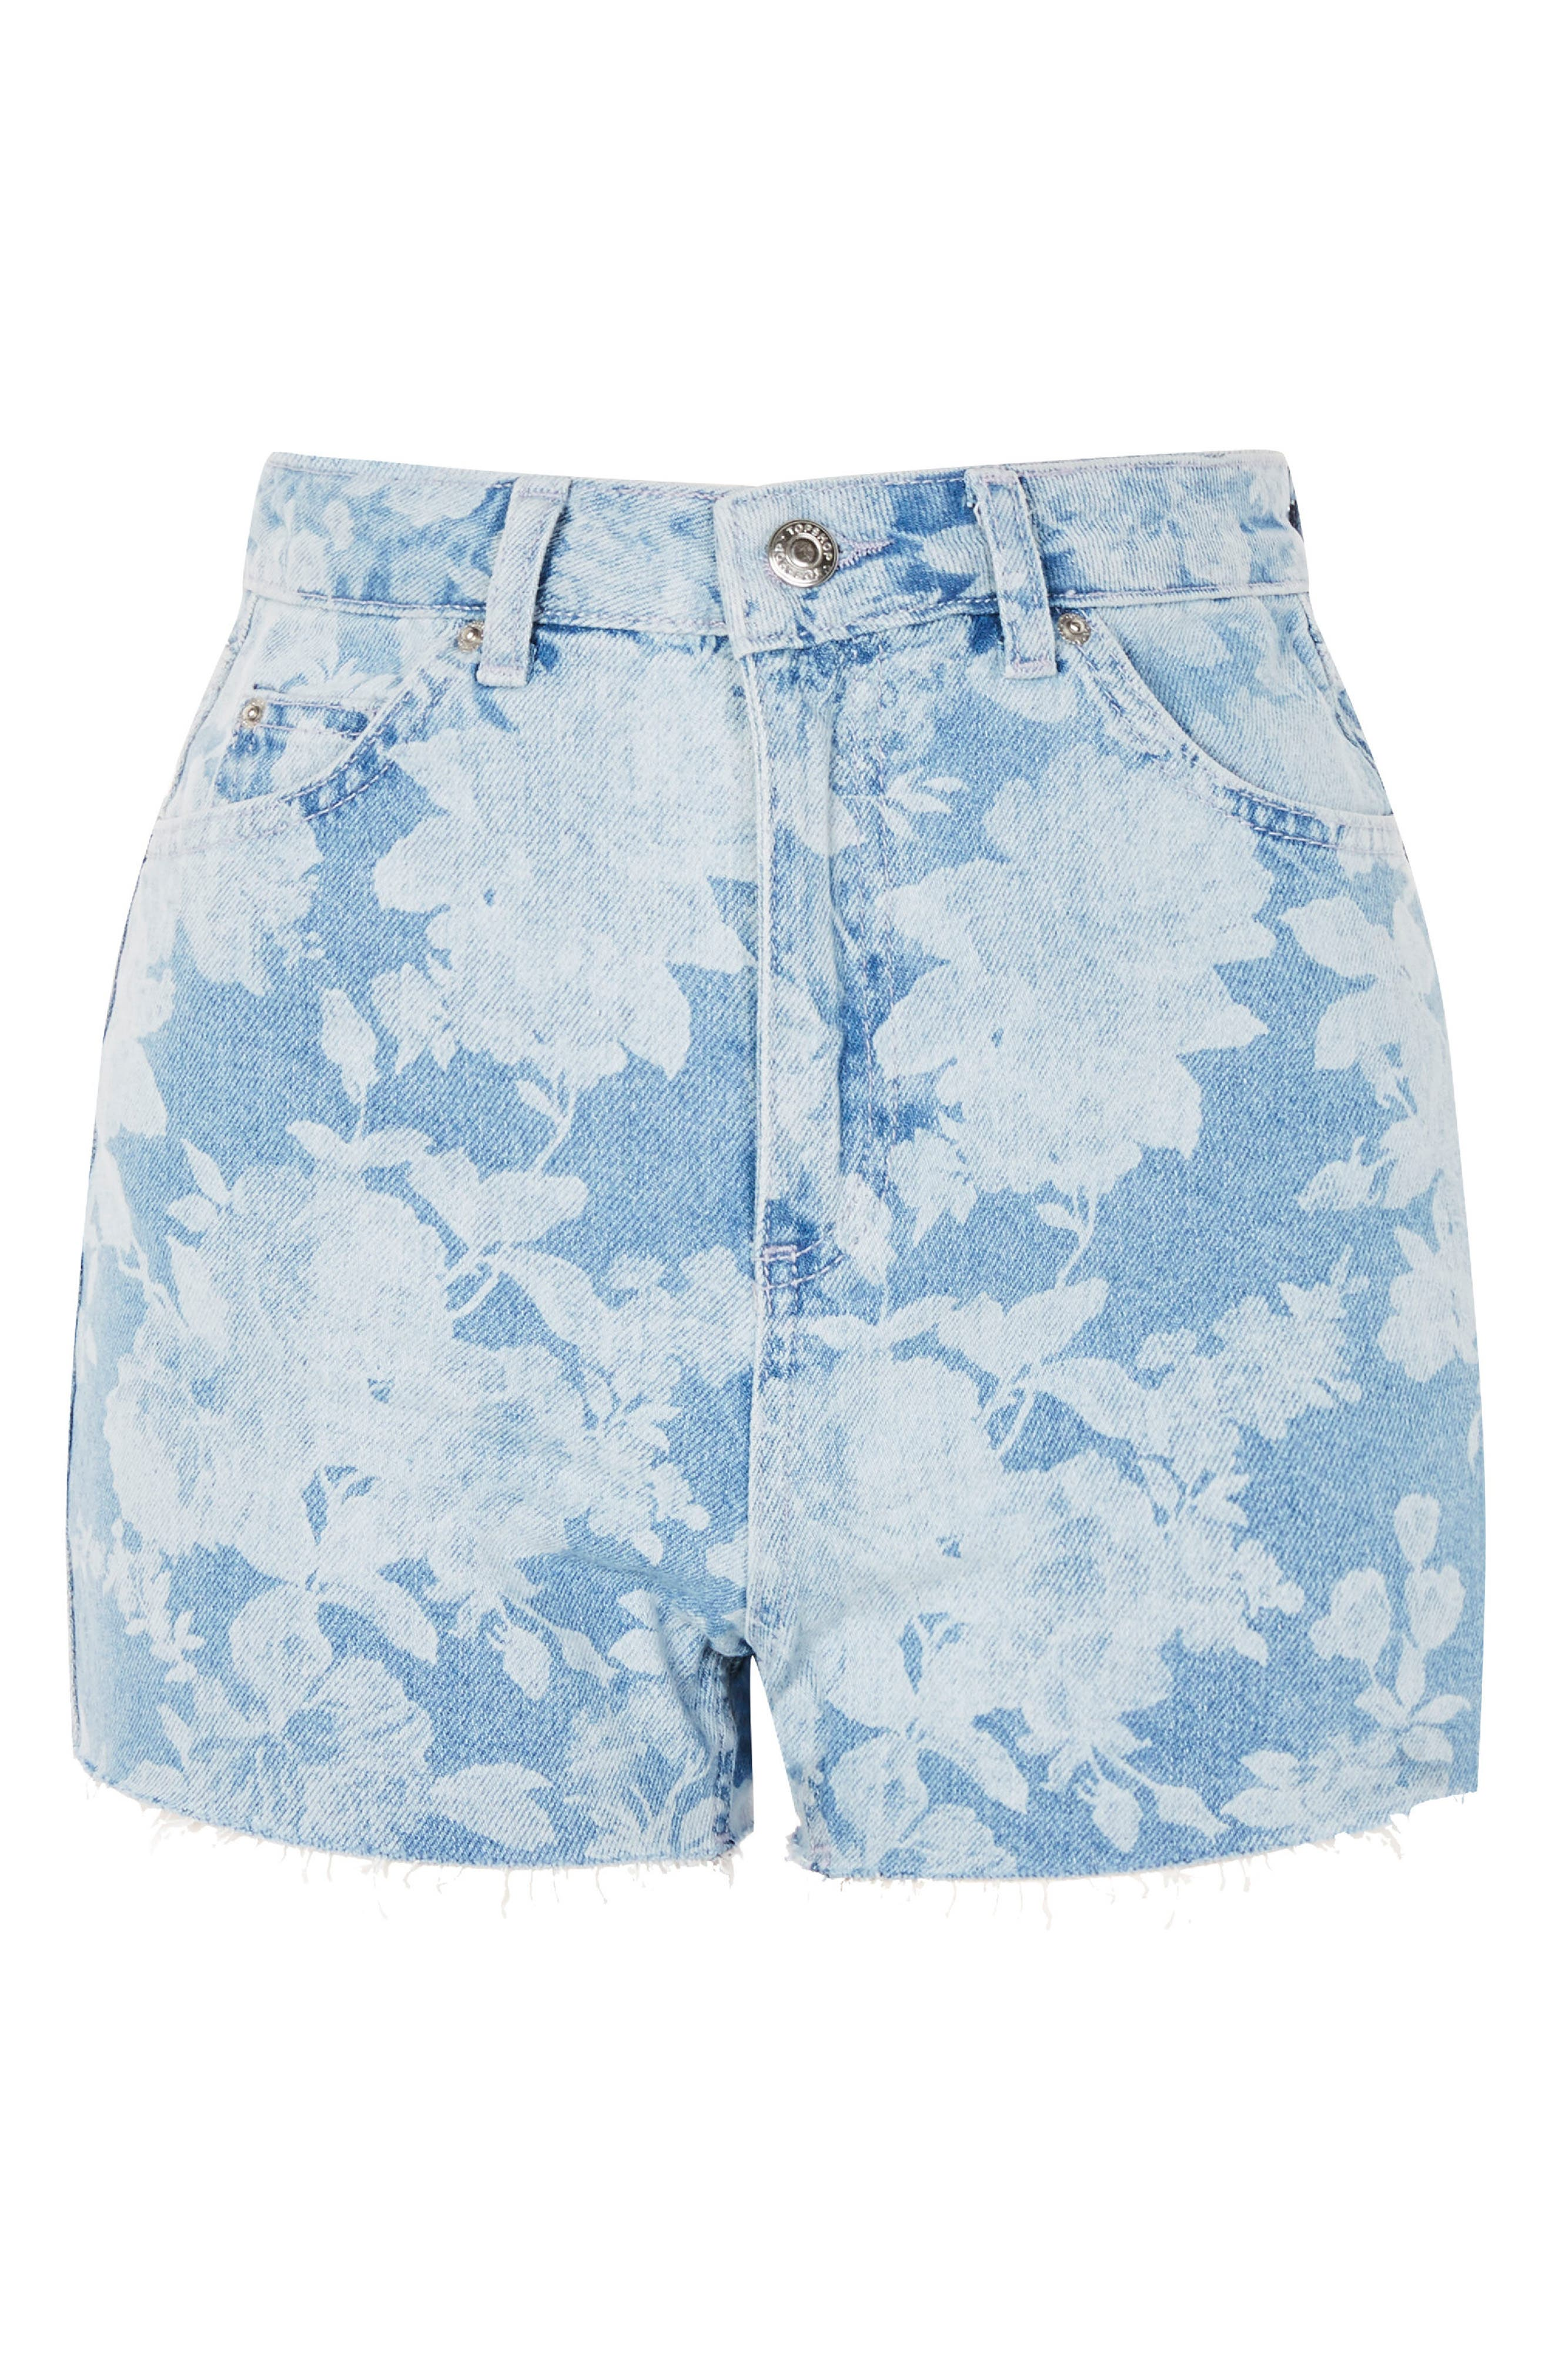 Floral Mom Shorts,                             Alternate thumbnail 3, color,                             420